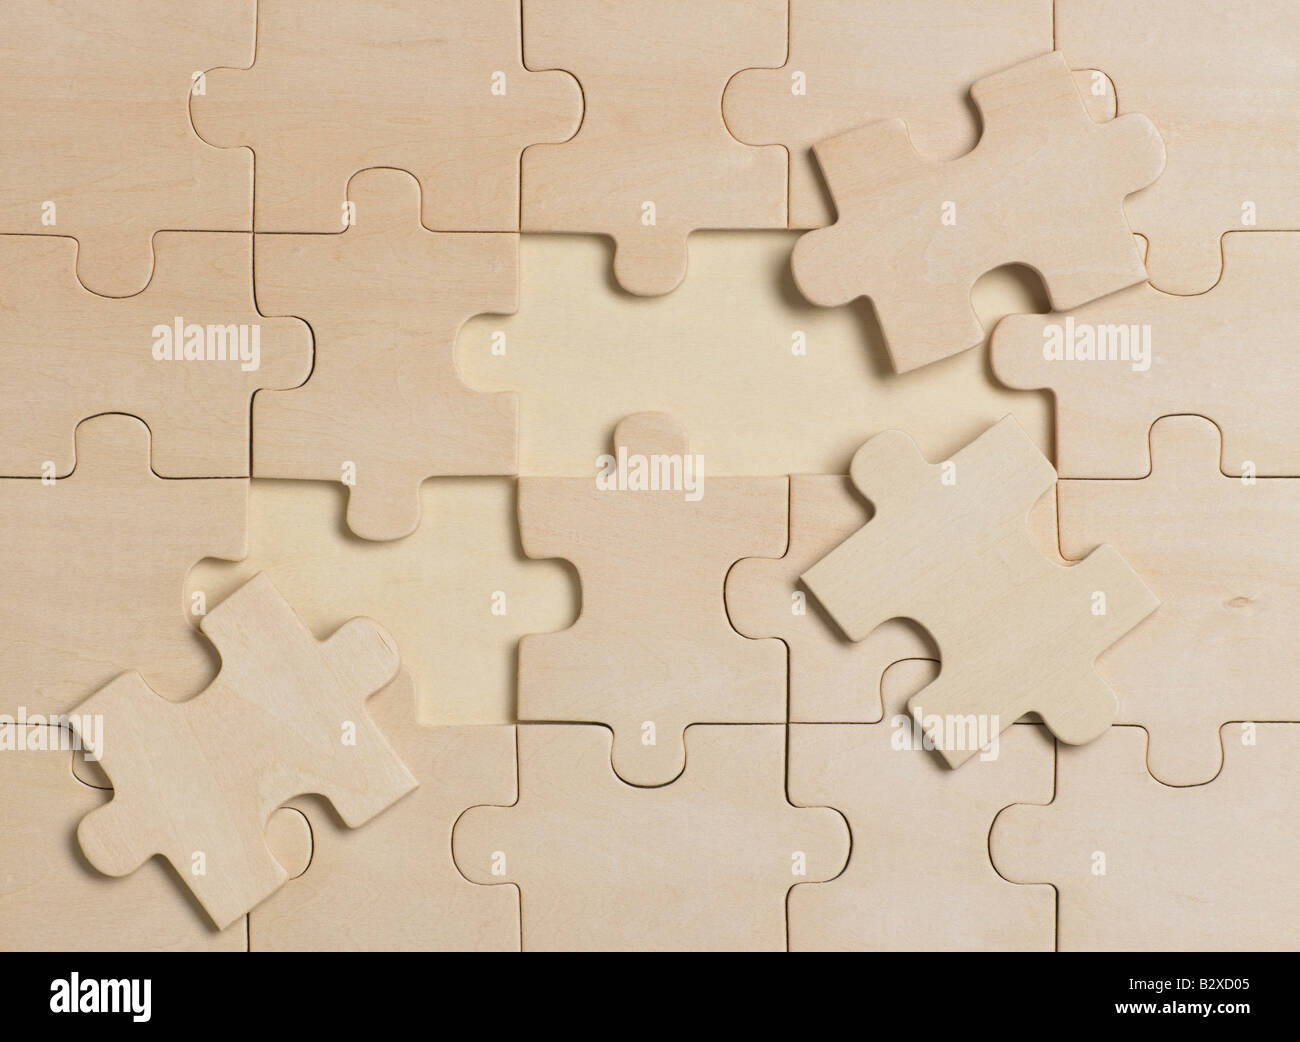 wooden jigsaw puzzle - Stock Image